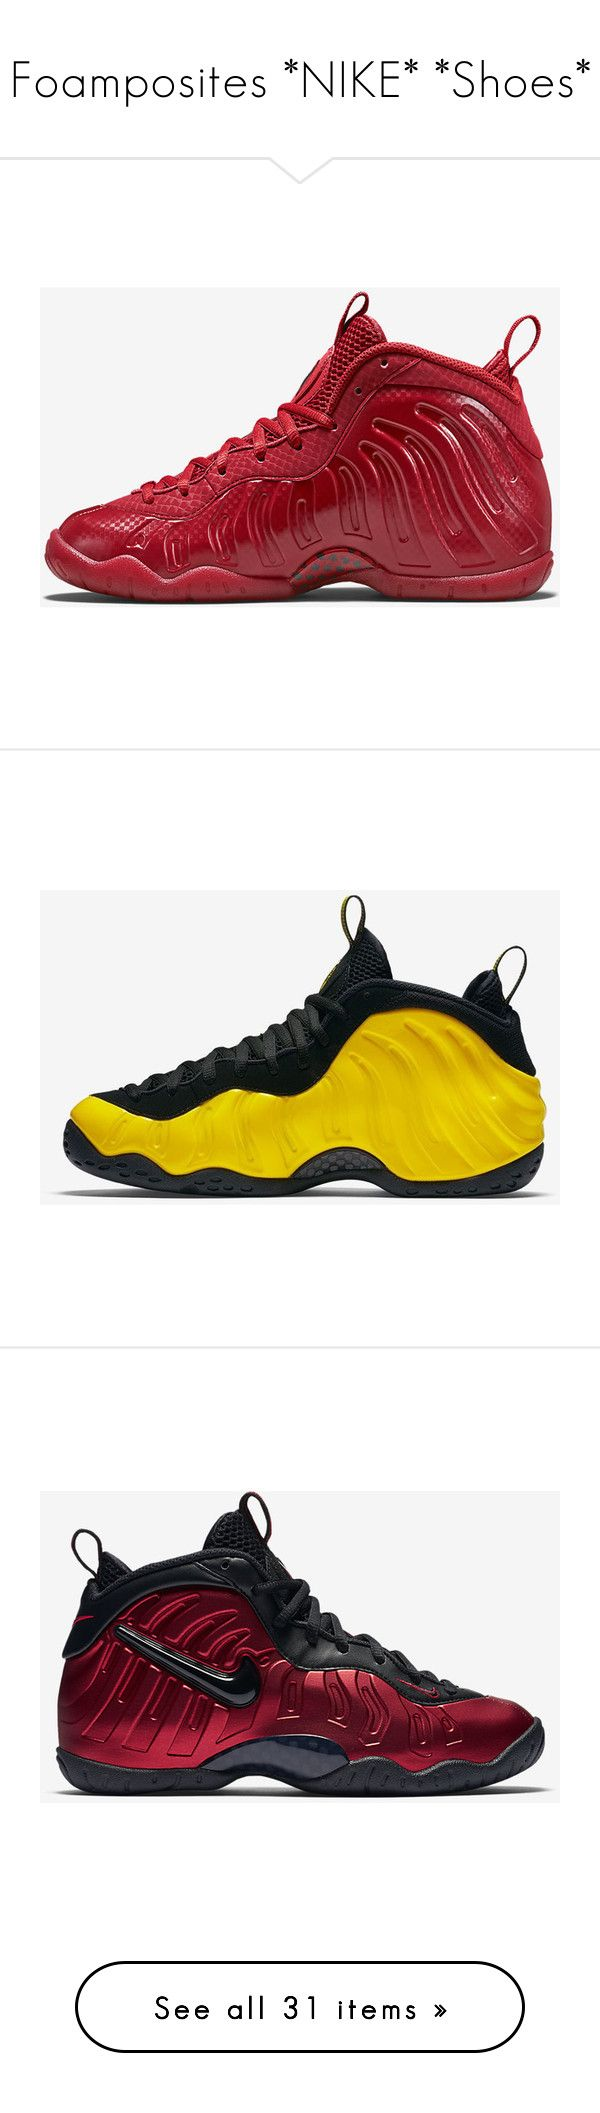 """""""Foamposites *NIKE* *Shoes*"""" by queenswag245 ❤ liked on Polyvore featuring shoes, nike, nike shoes, nike footwear, foams, sneakers, men's fashion, jordans, foamposite and high top shoes"""